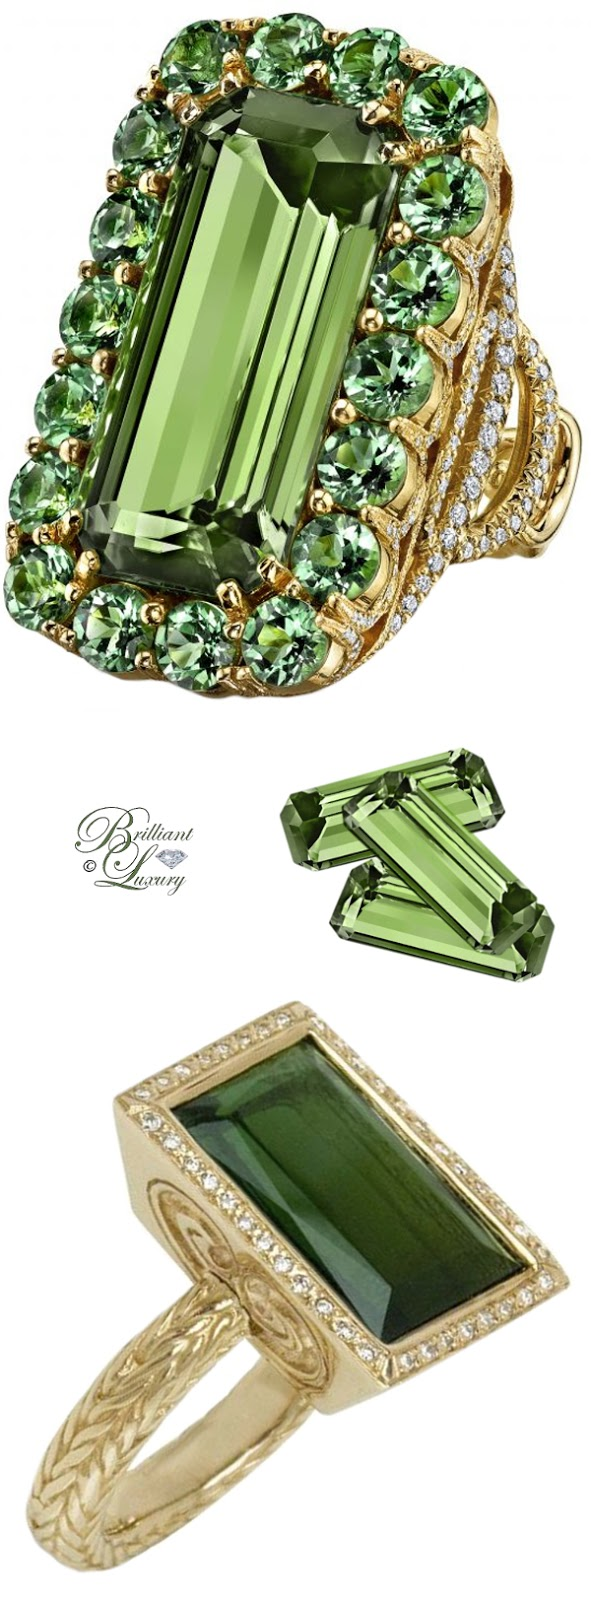 Brilliant Luxury ♦ Erica Courtney Csarite Byzantine Ring & Just Jules Green Tourmaline Ring